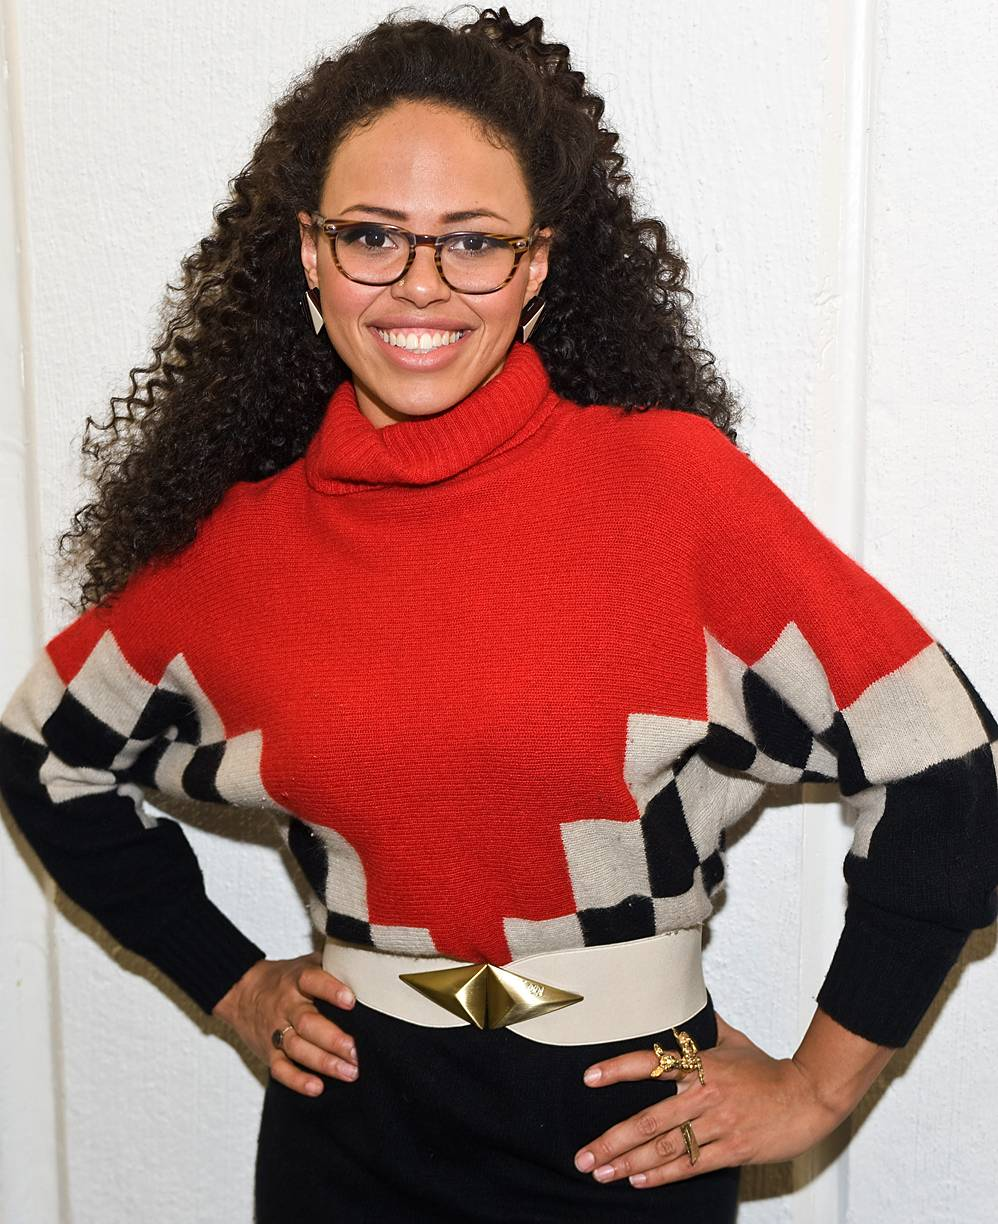 Huxtable Inspired\r - Elle gives us Denise Huxtable chic in her oversized sweater, glasses and belt.\r(Photo: Timothy Hiatt/Getty Images)